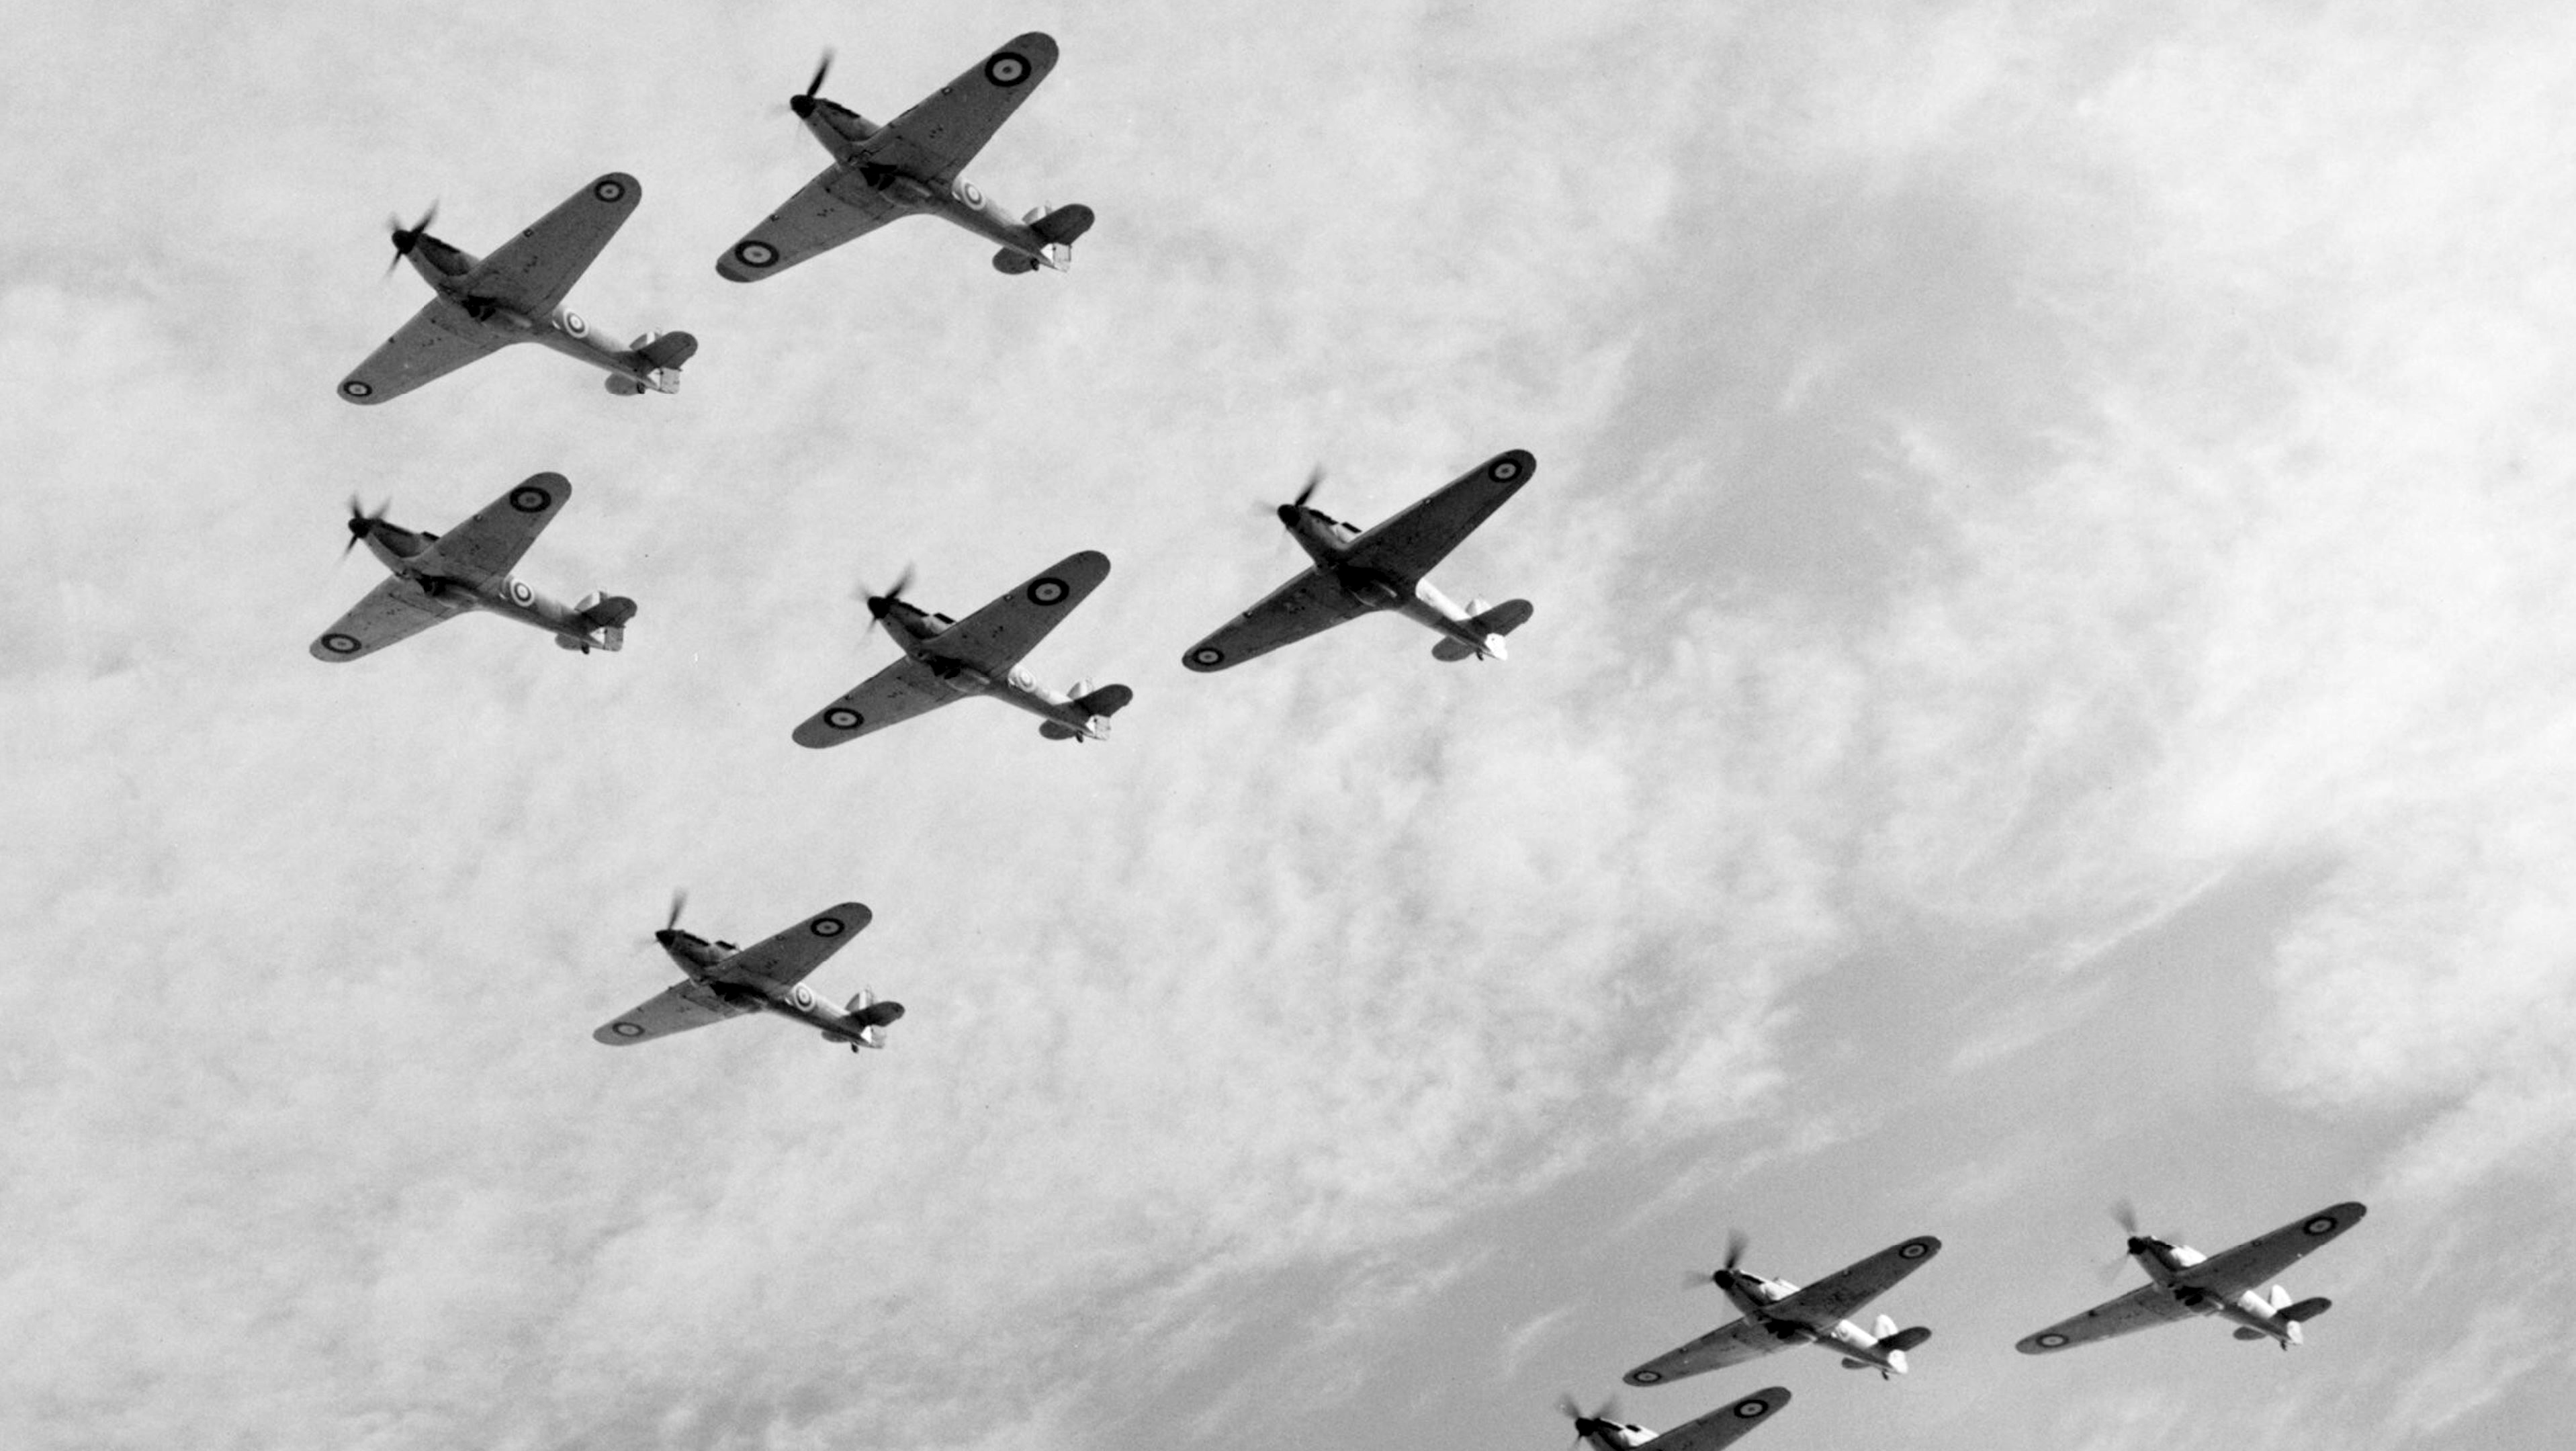 Hurricanes Is RAF 85Sqn in group formation Battle of Britain 1940 IWM C1500a